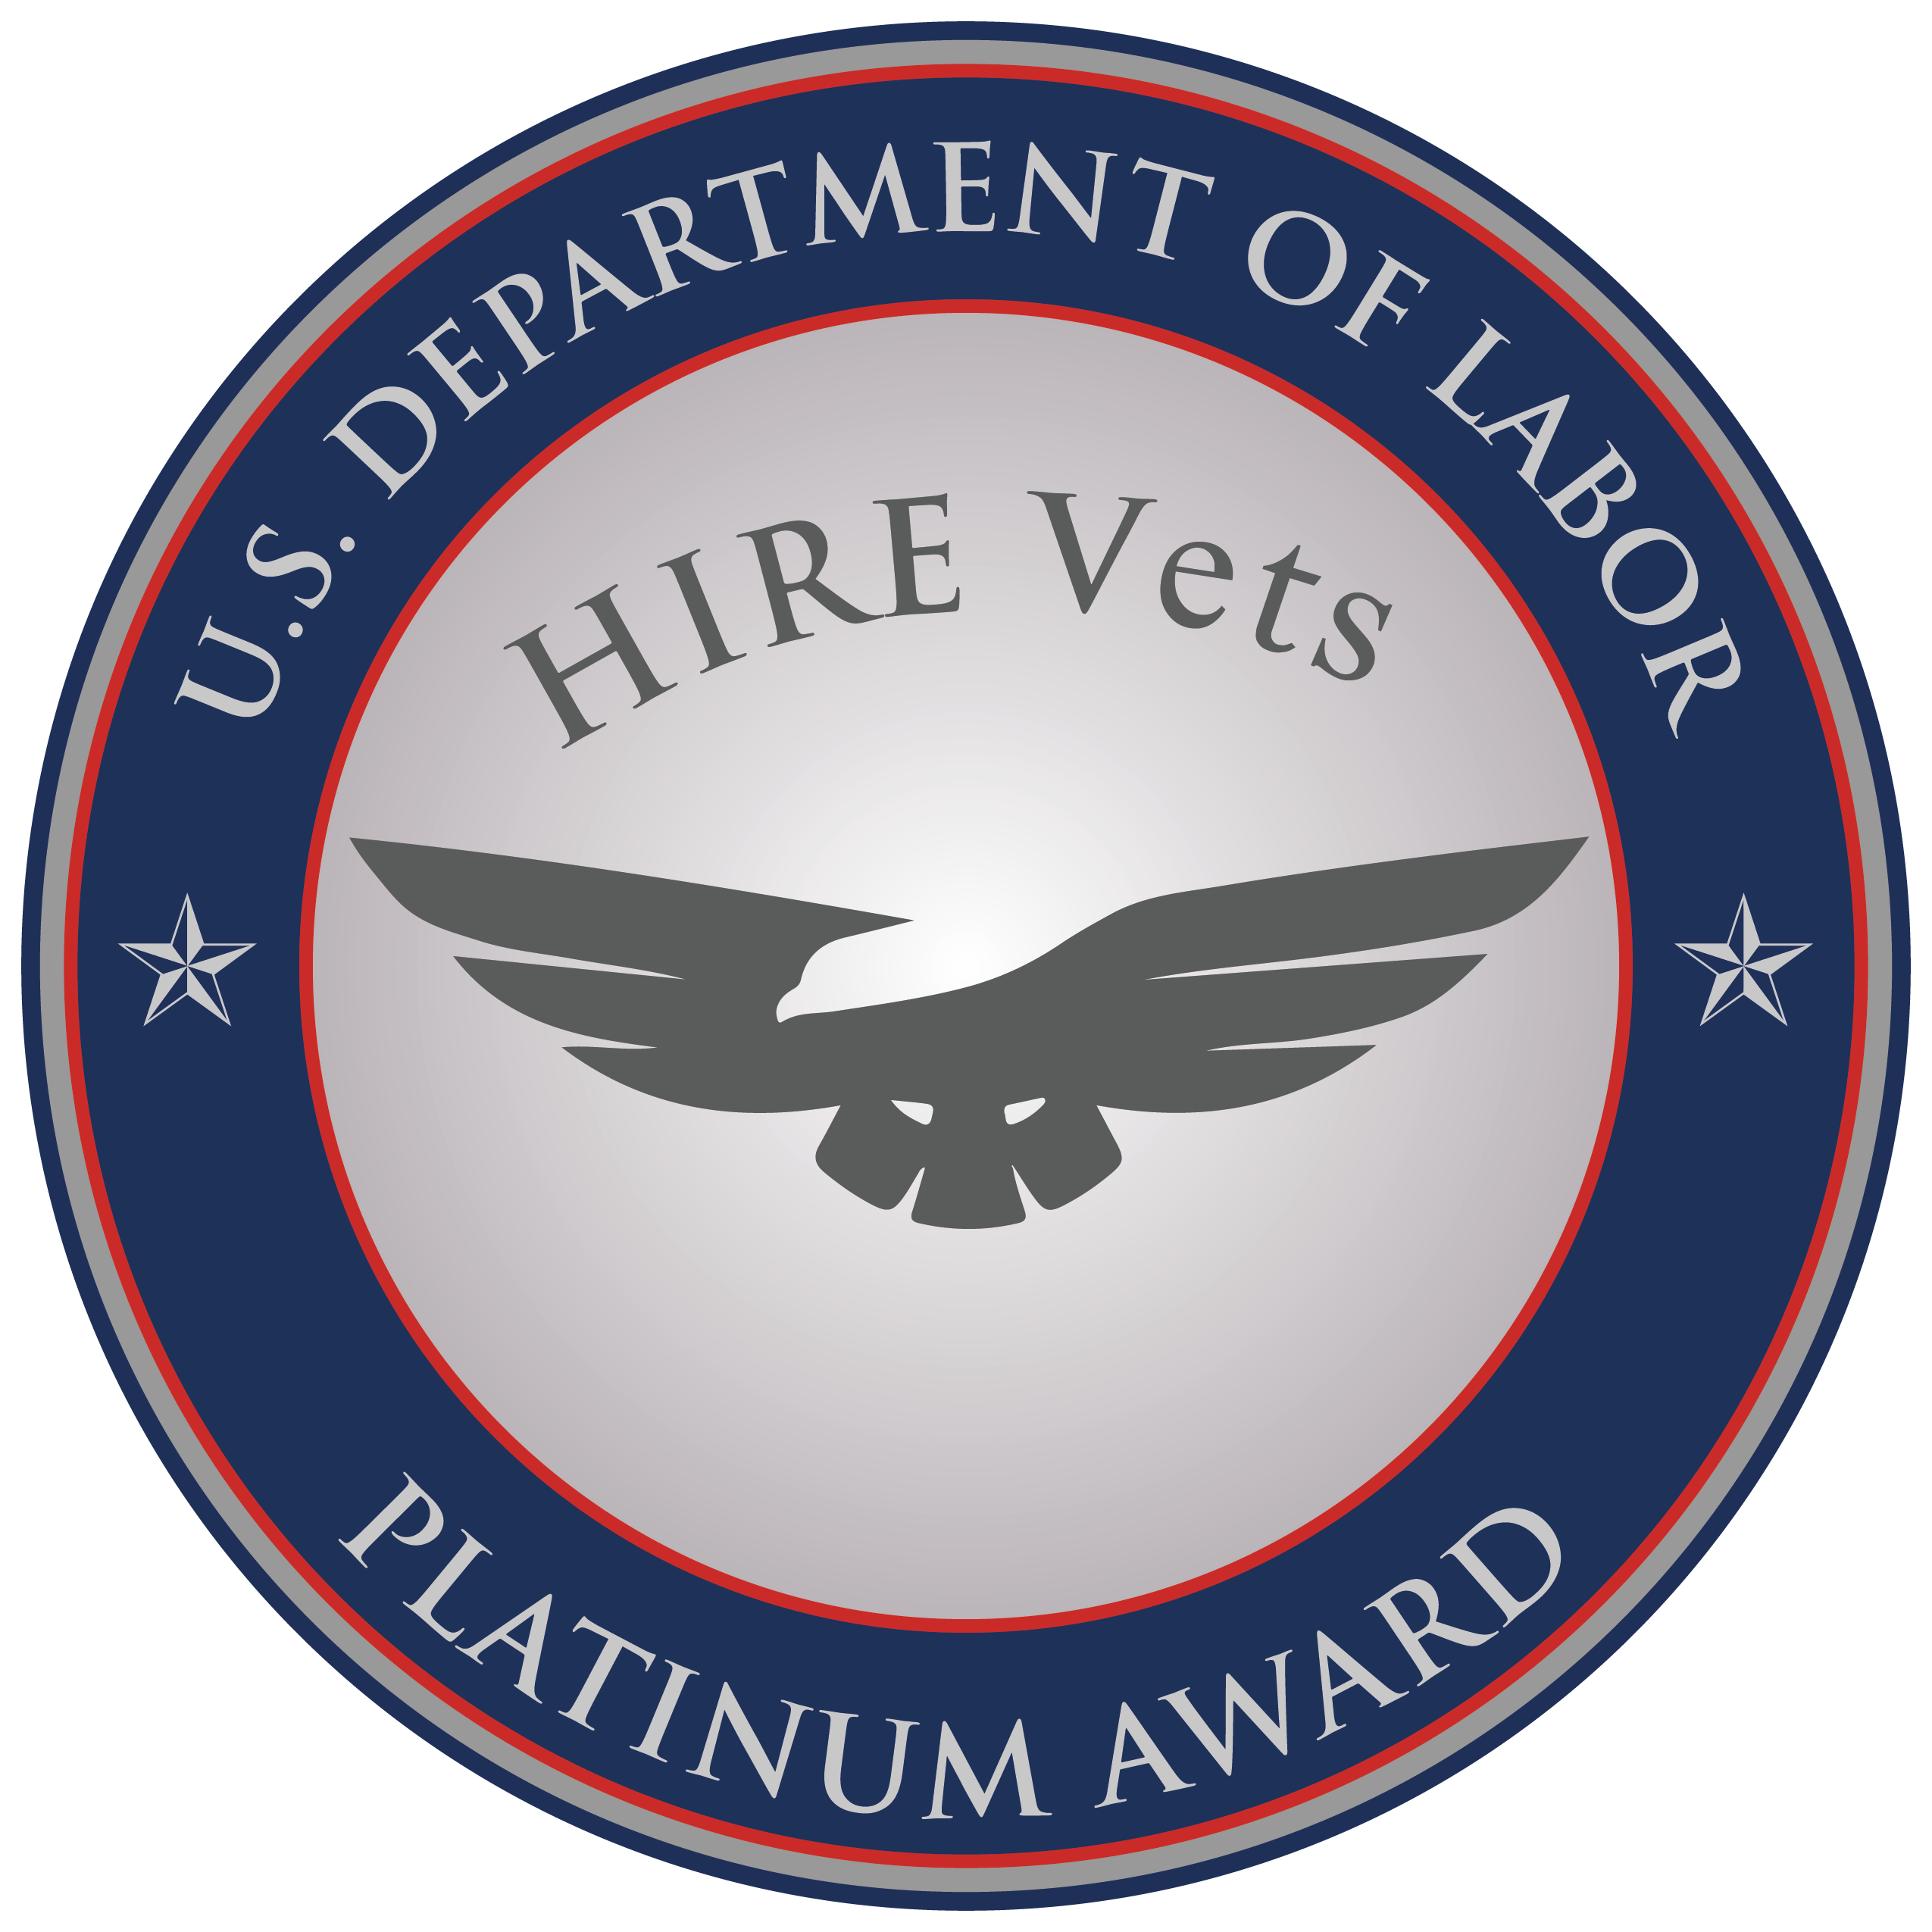 DOL Platinum Award for Veteran Hiring